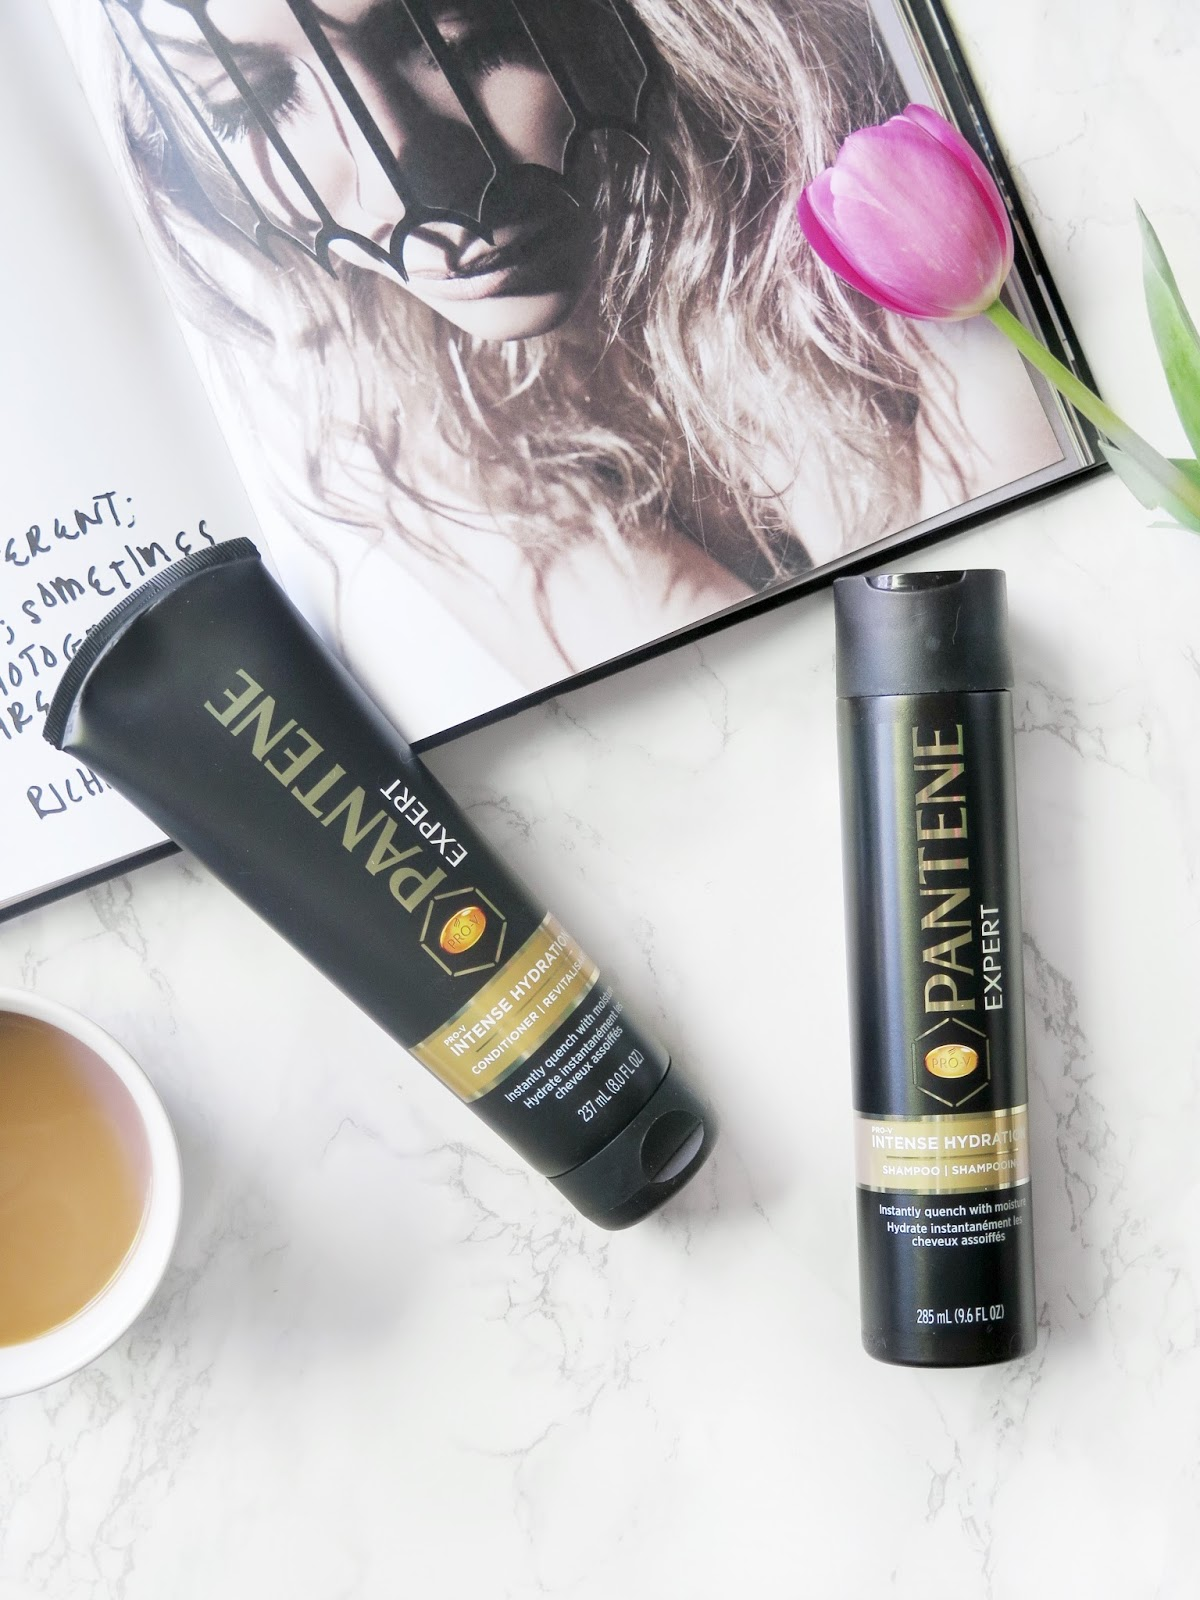 Healthy Hydrated Hair For Spring With Pantene Expert | My Haircare Routine & Essentials | labellesirene.ca